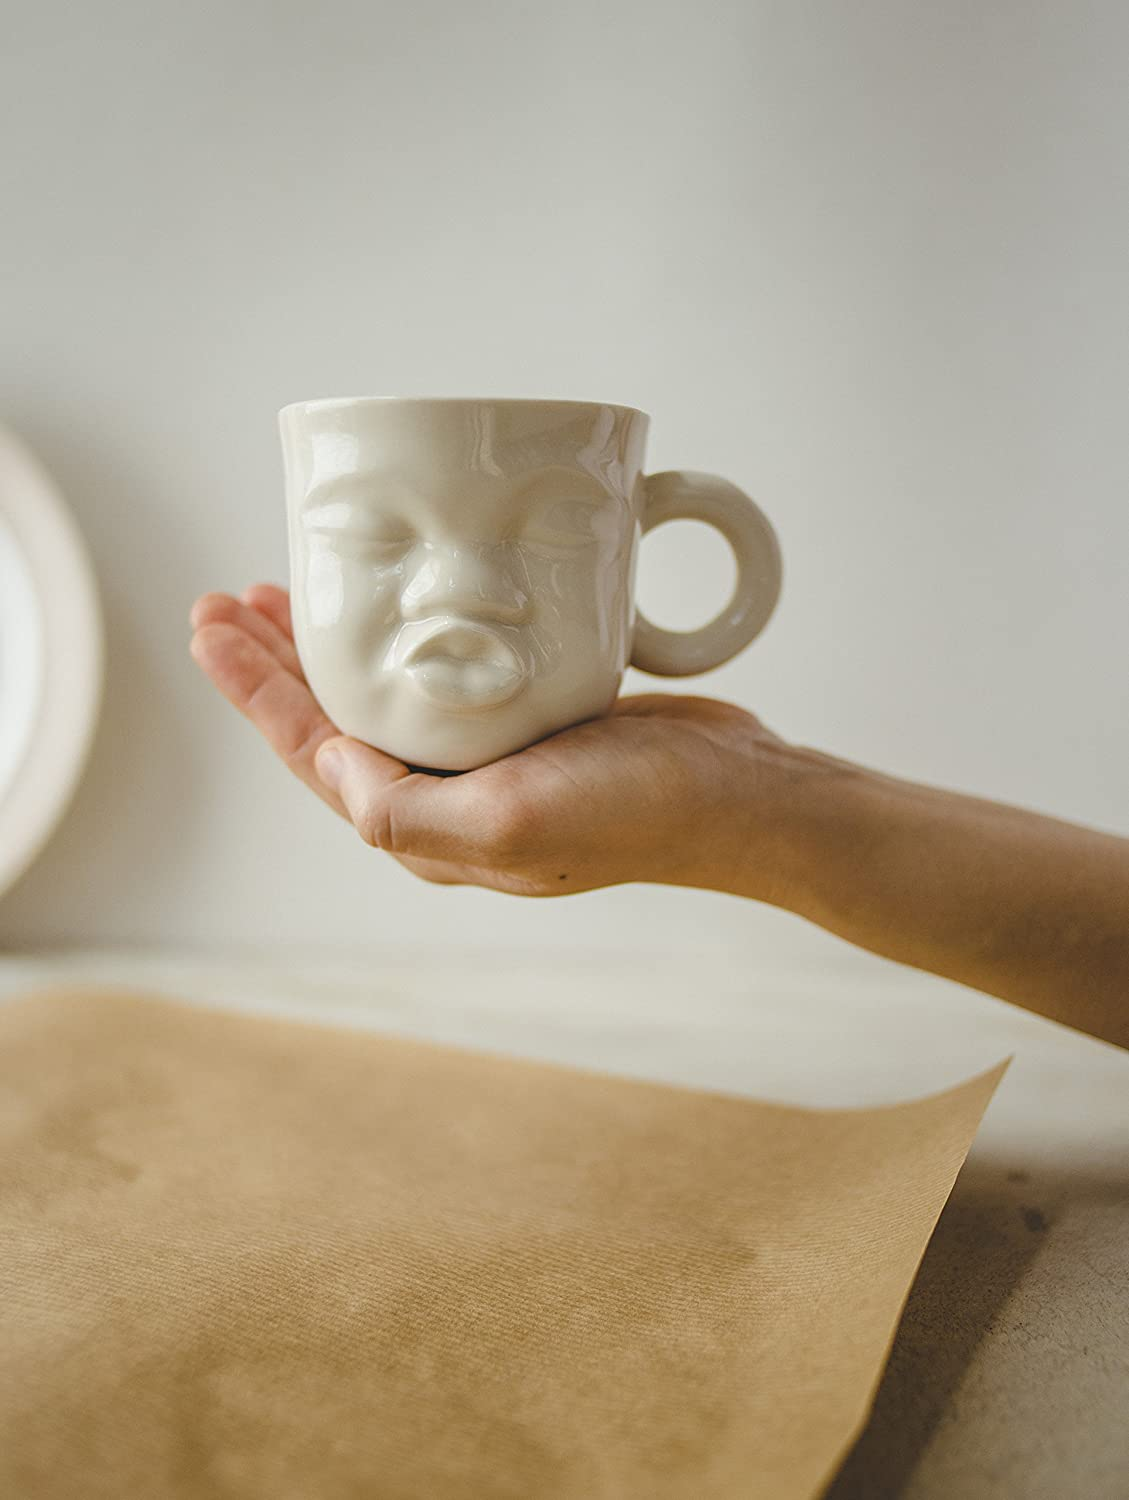 Modern white porcelain small coffee tea or dessert cup with a cute and funny kissing face by SinD studio